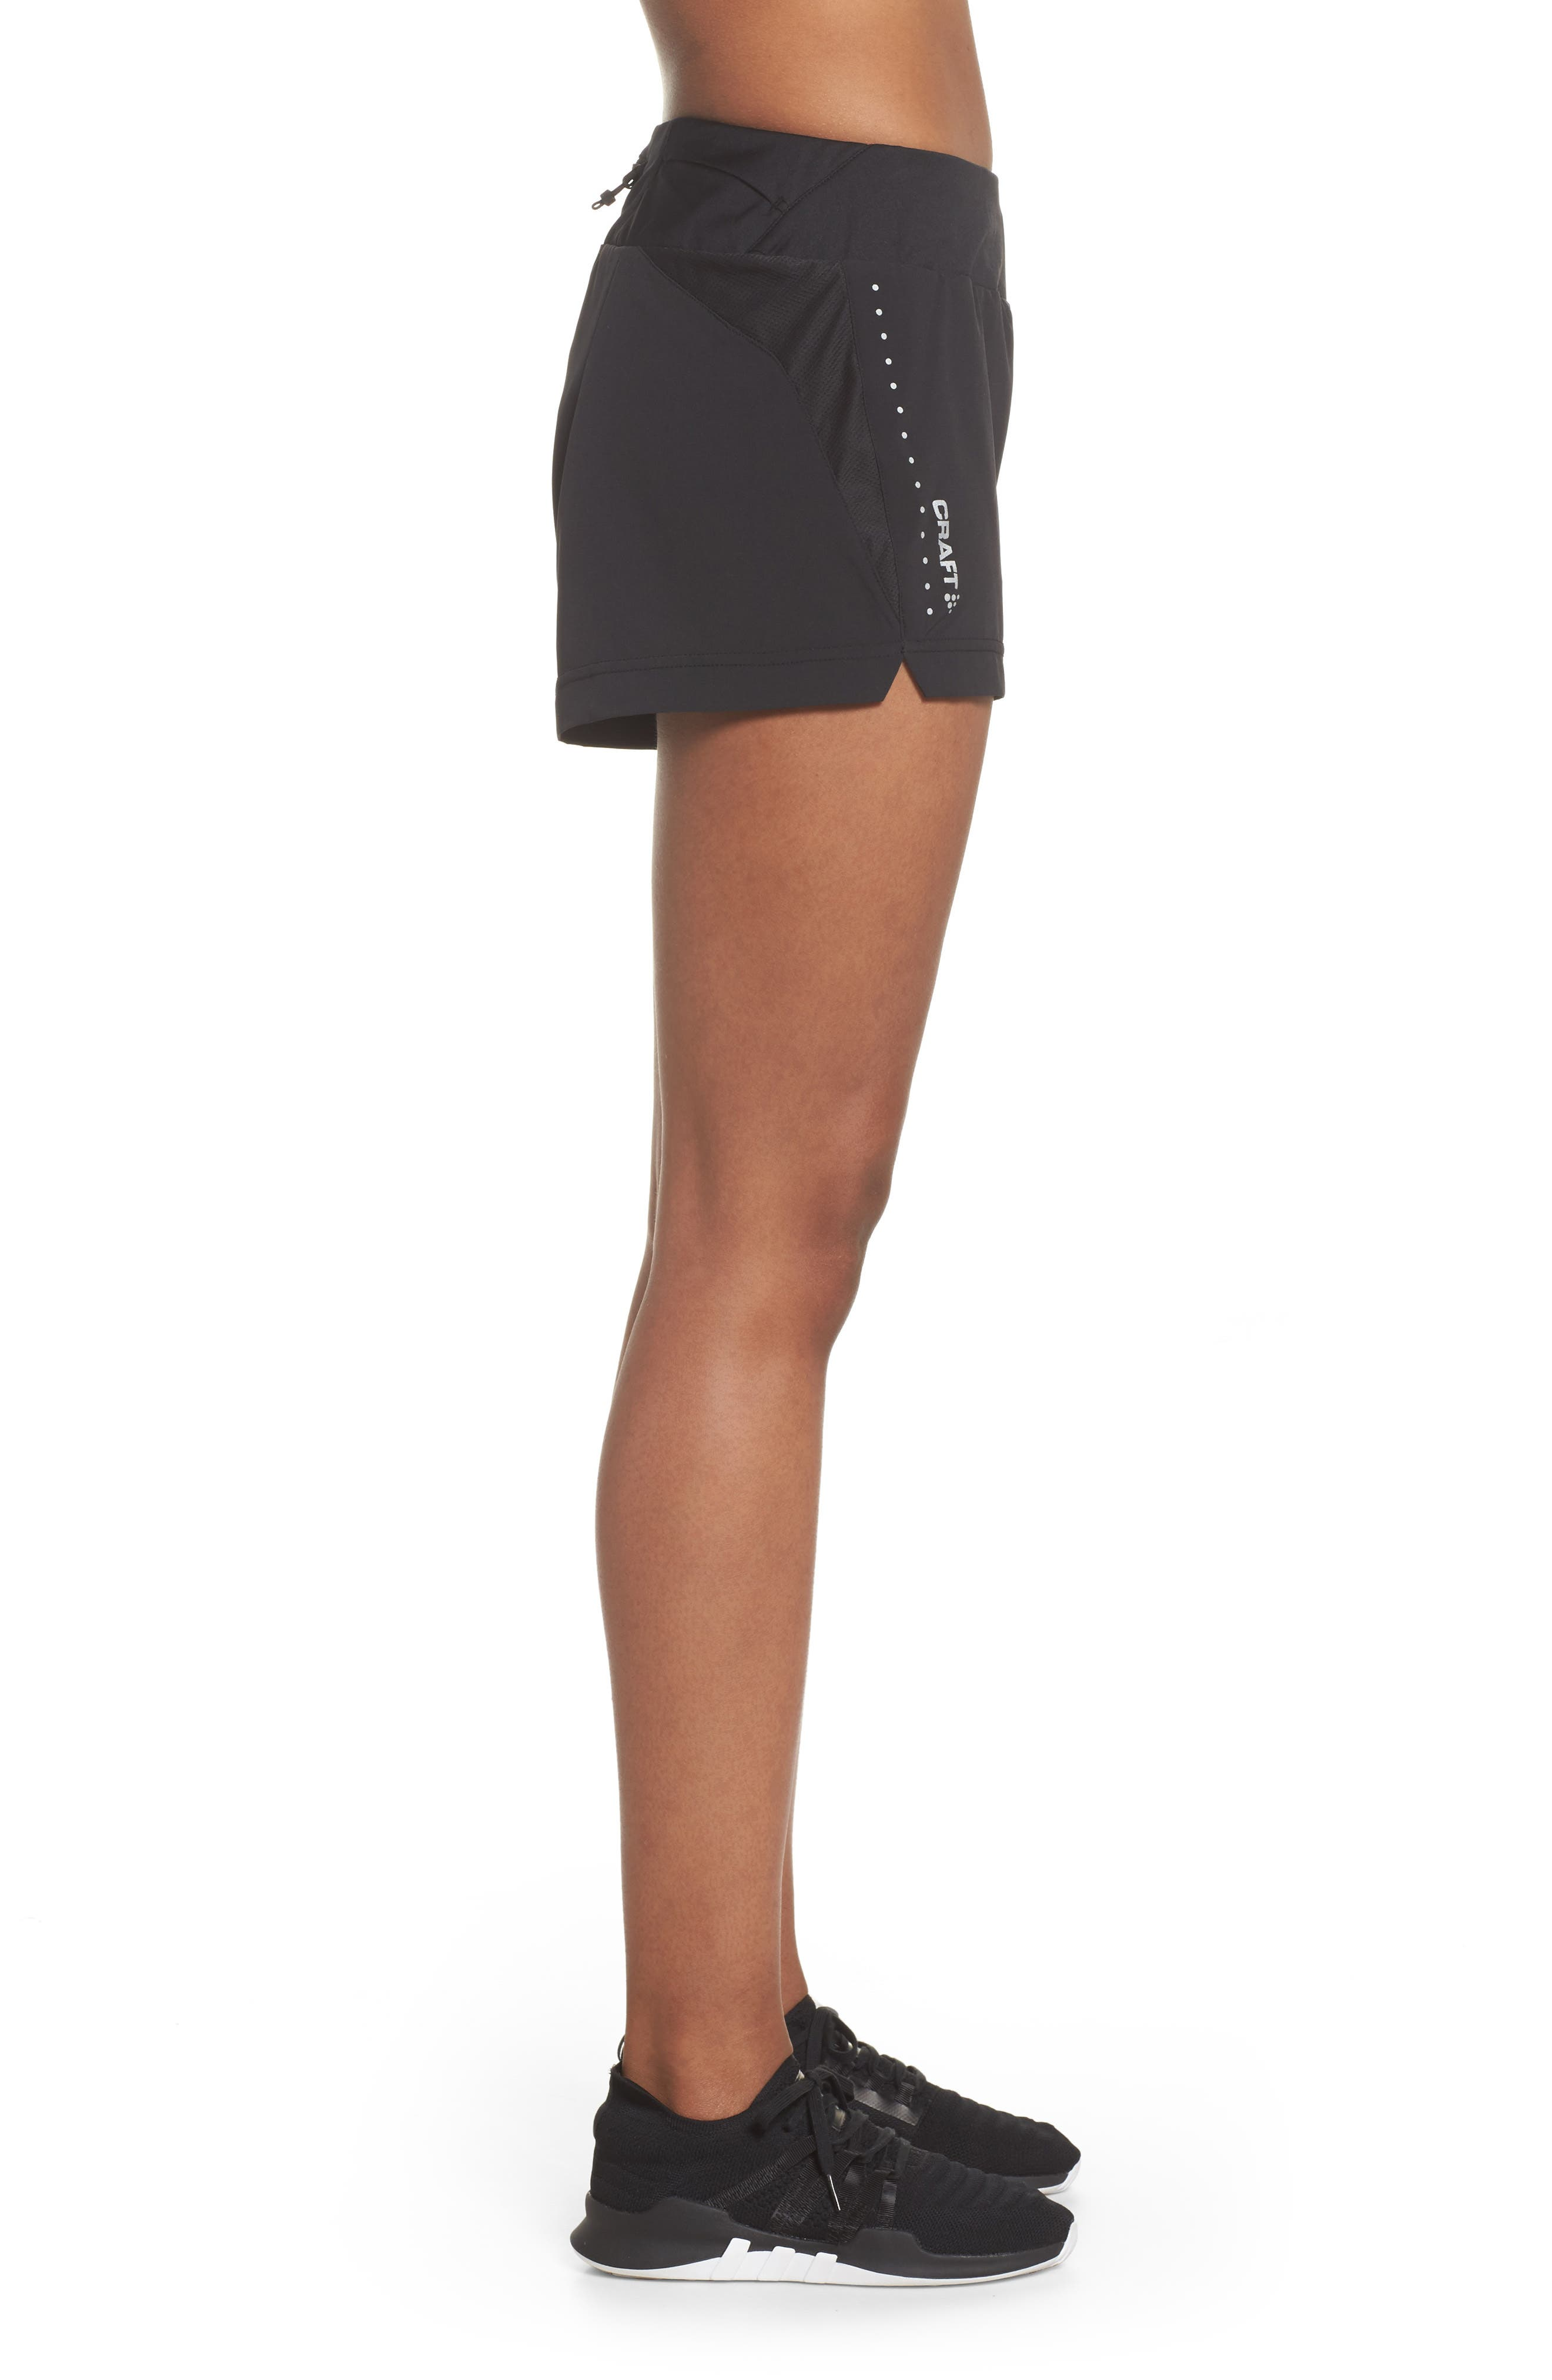 Essential Running Shorts,                             Alternate thumbnail 3, color,